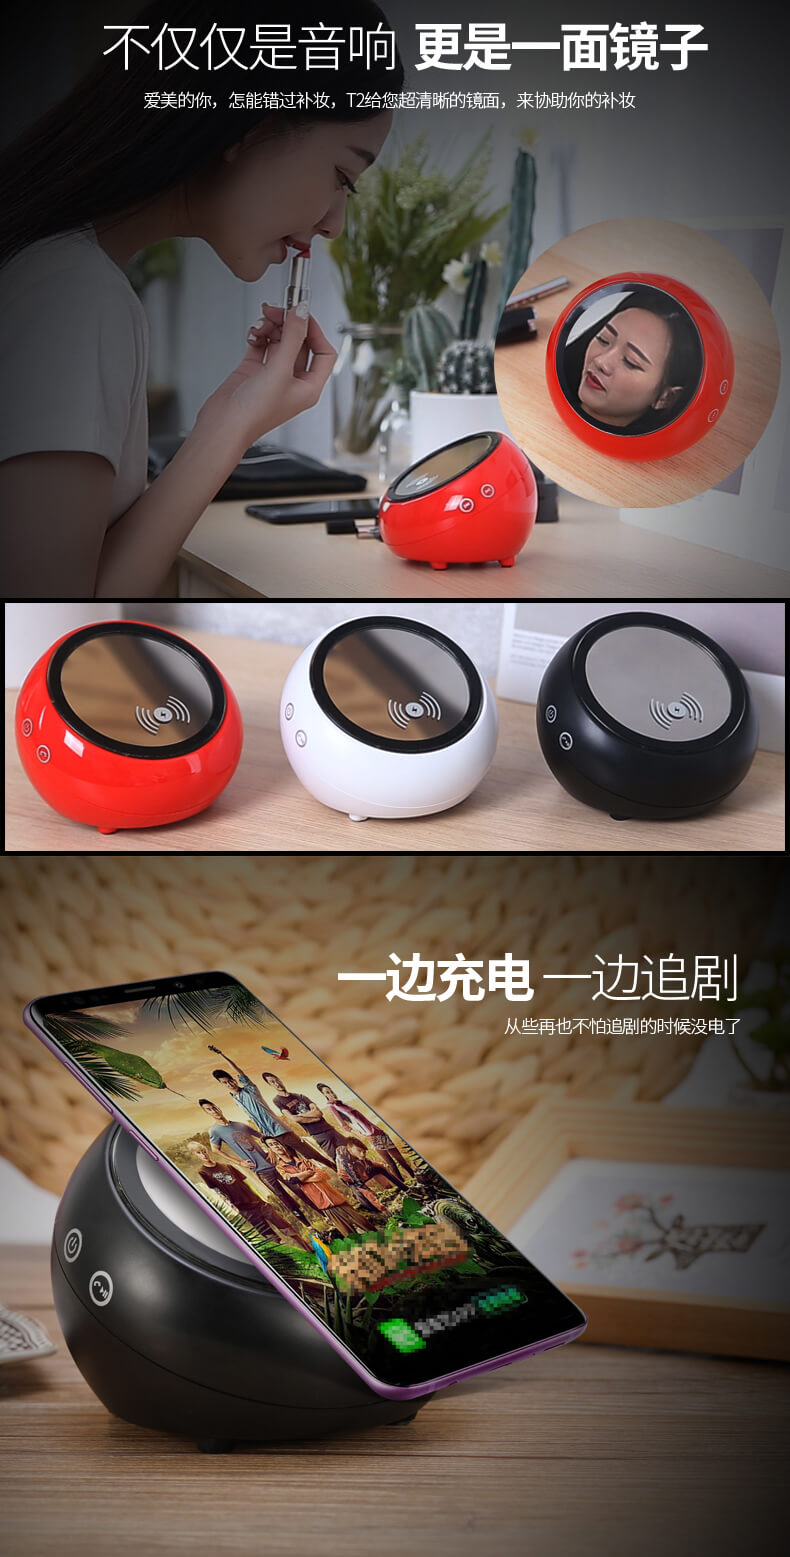 PinJun Electronic-Oem Wireless Charger Iphone Manufacturer | Wireless Charger-3